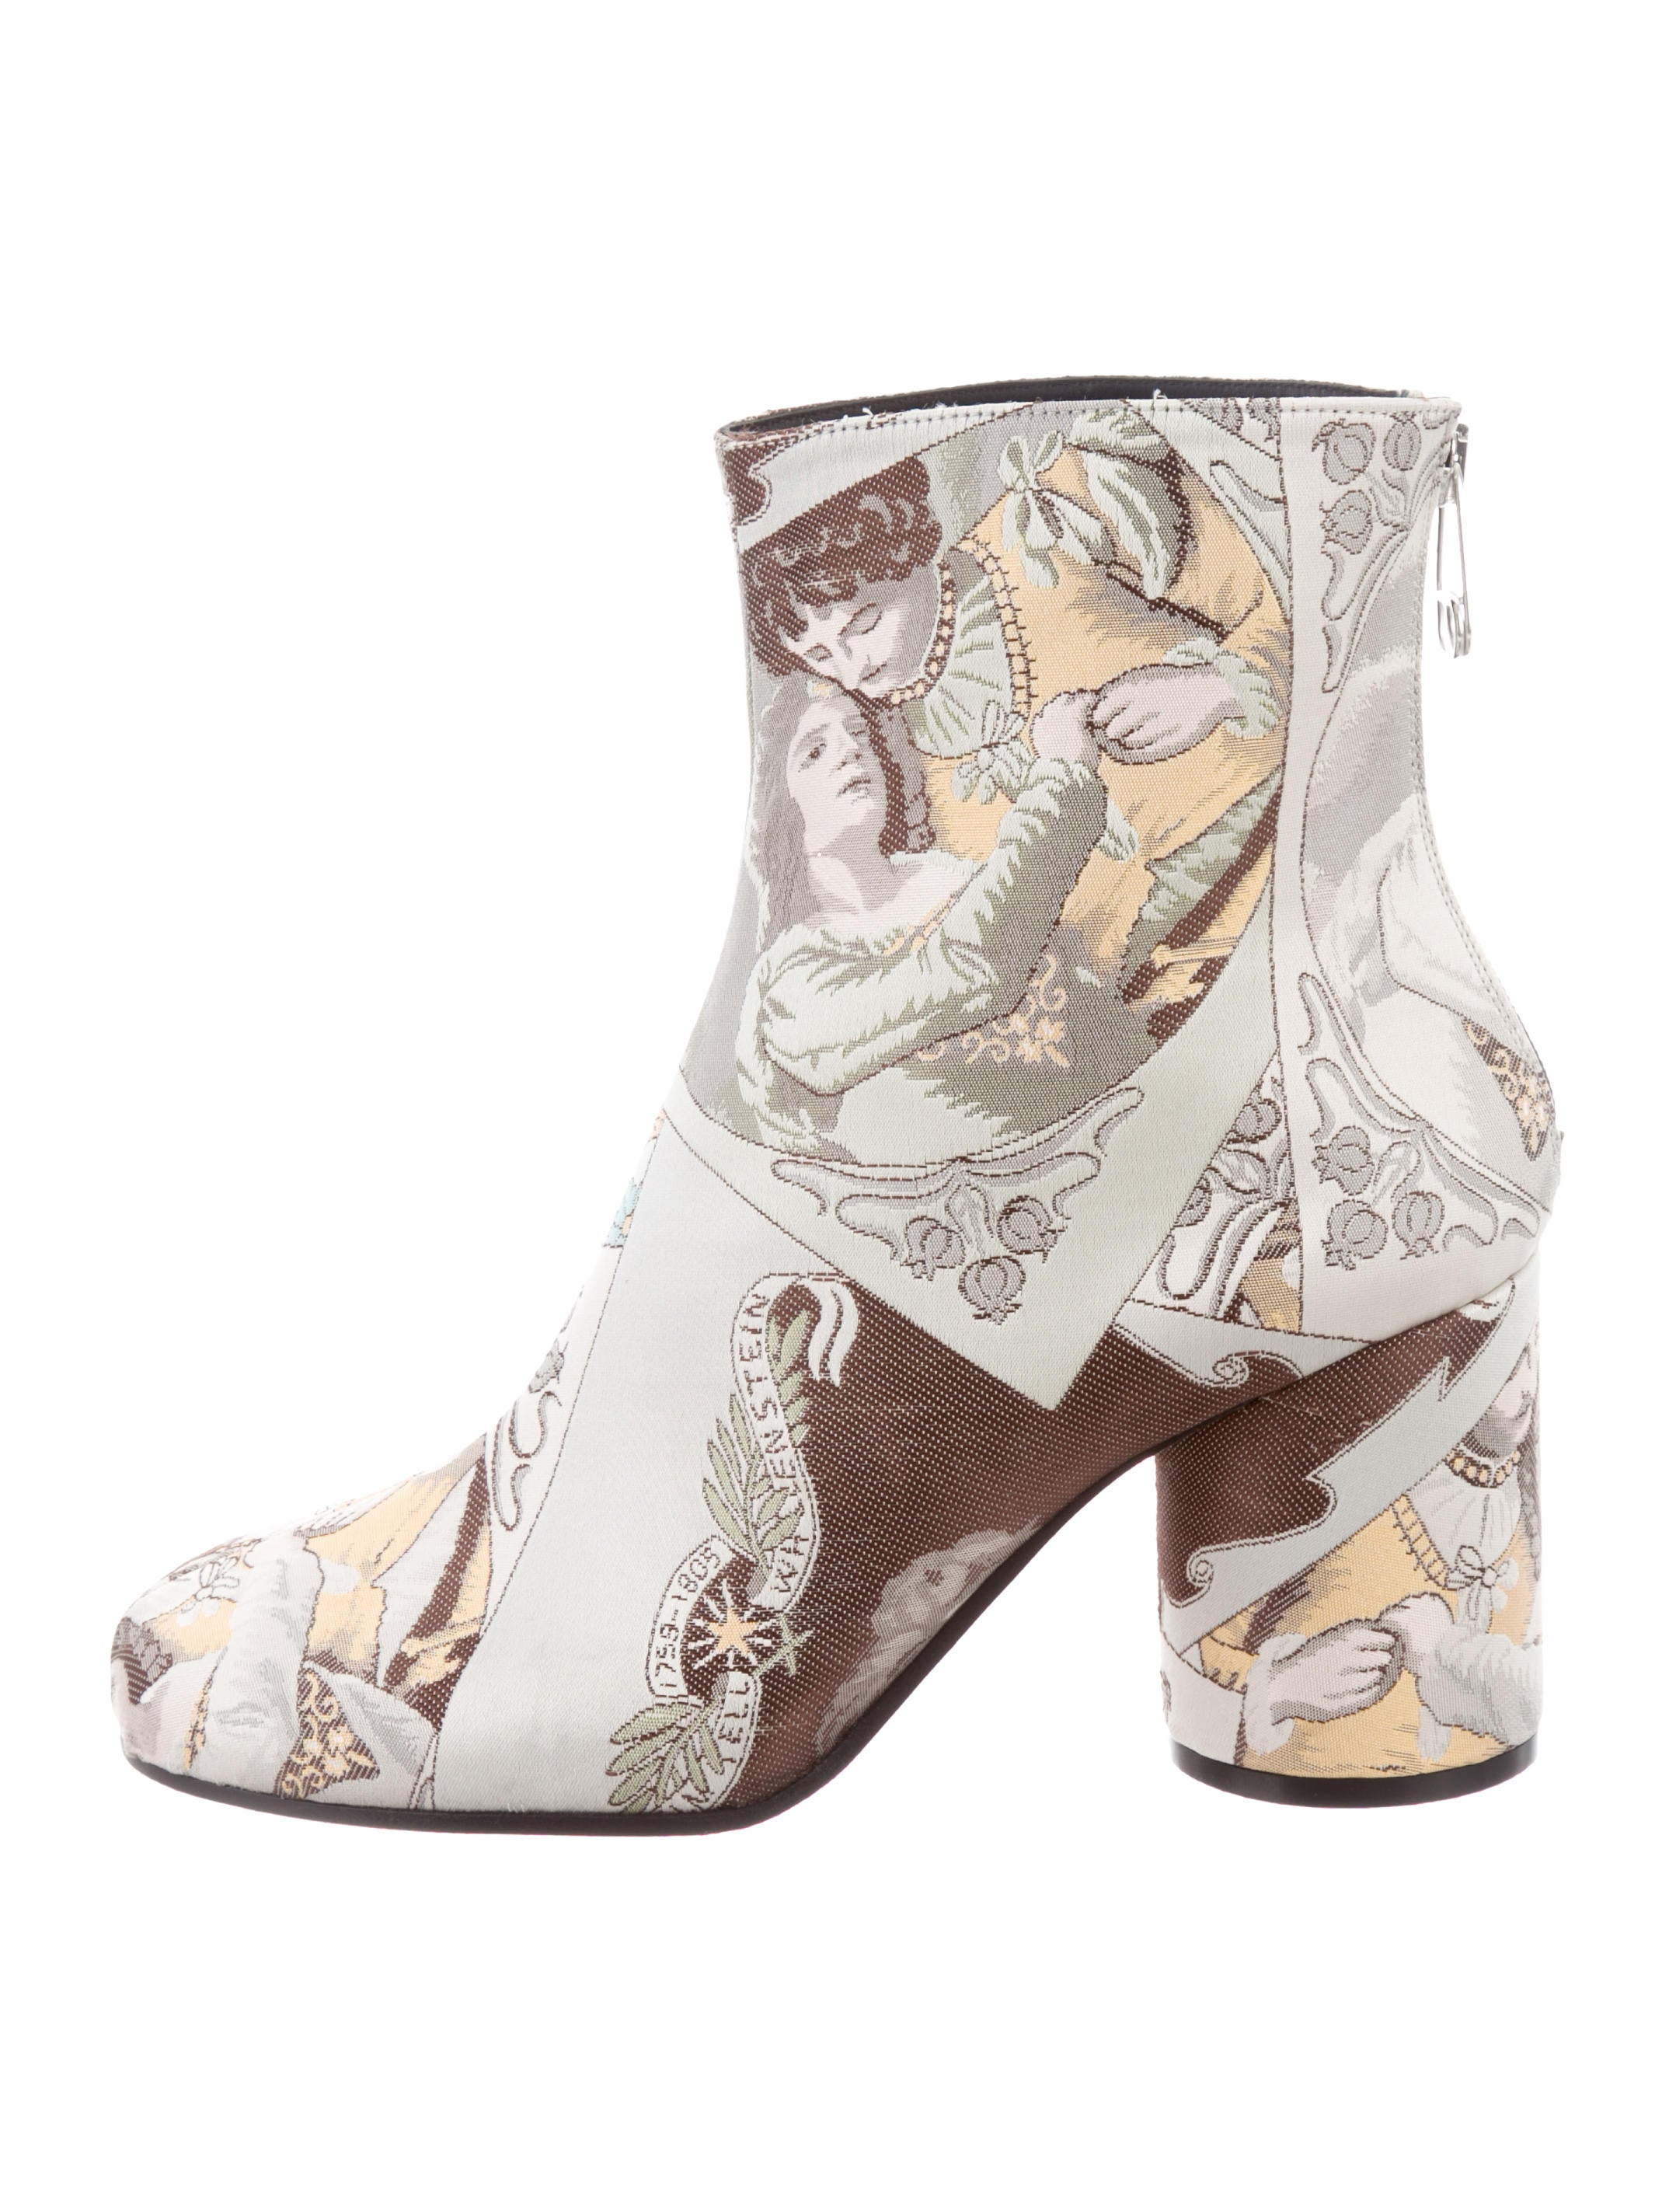 Maison Margiela Satin Printed Ankle Boots w/ Tags outlet where to buy reliable sale online FHBPCUd